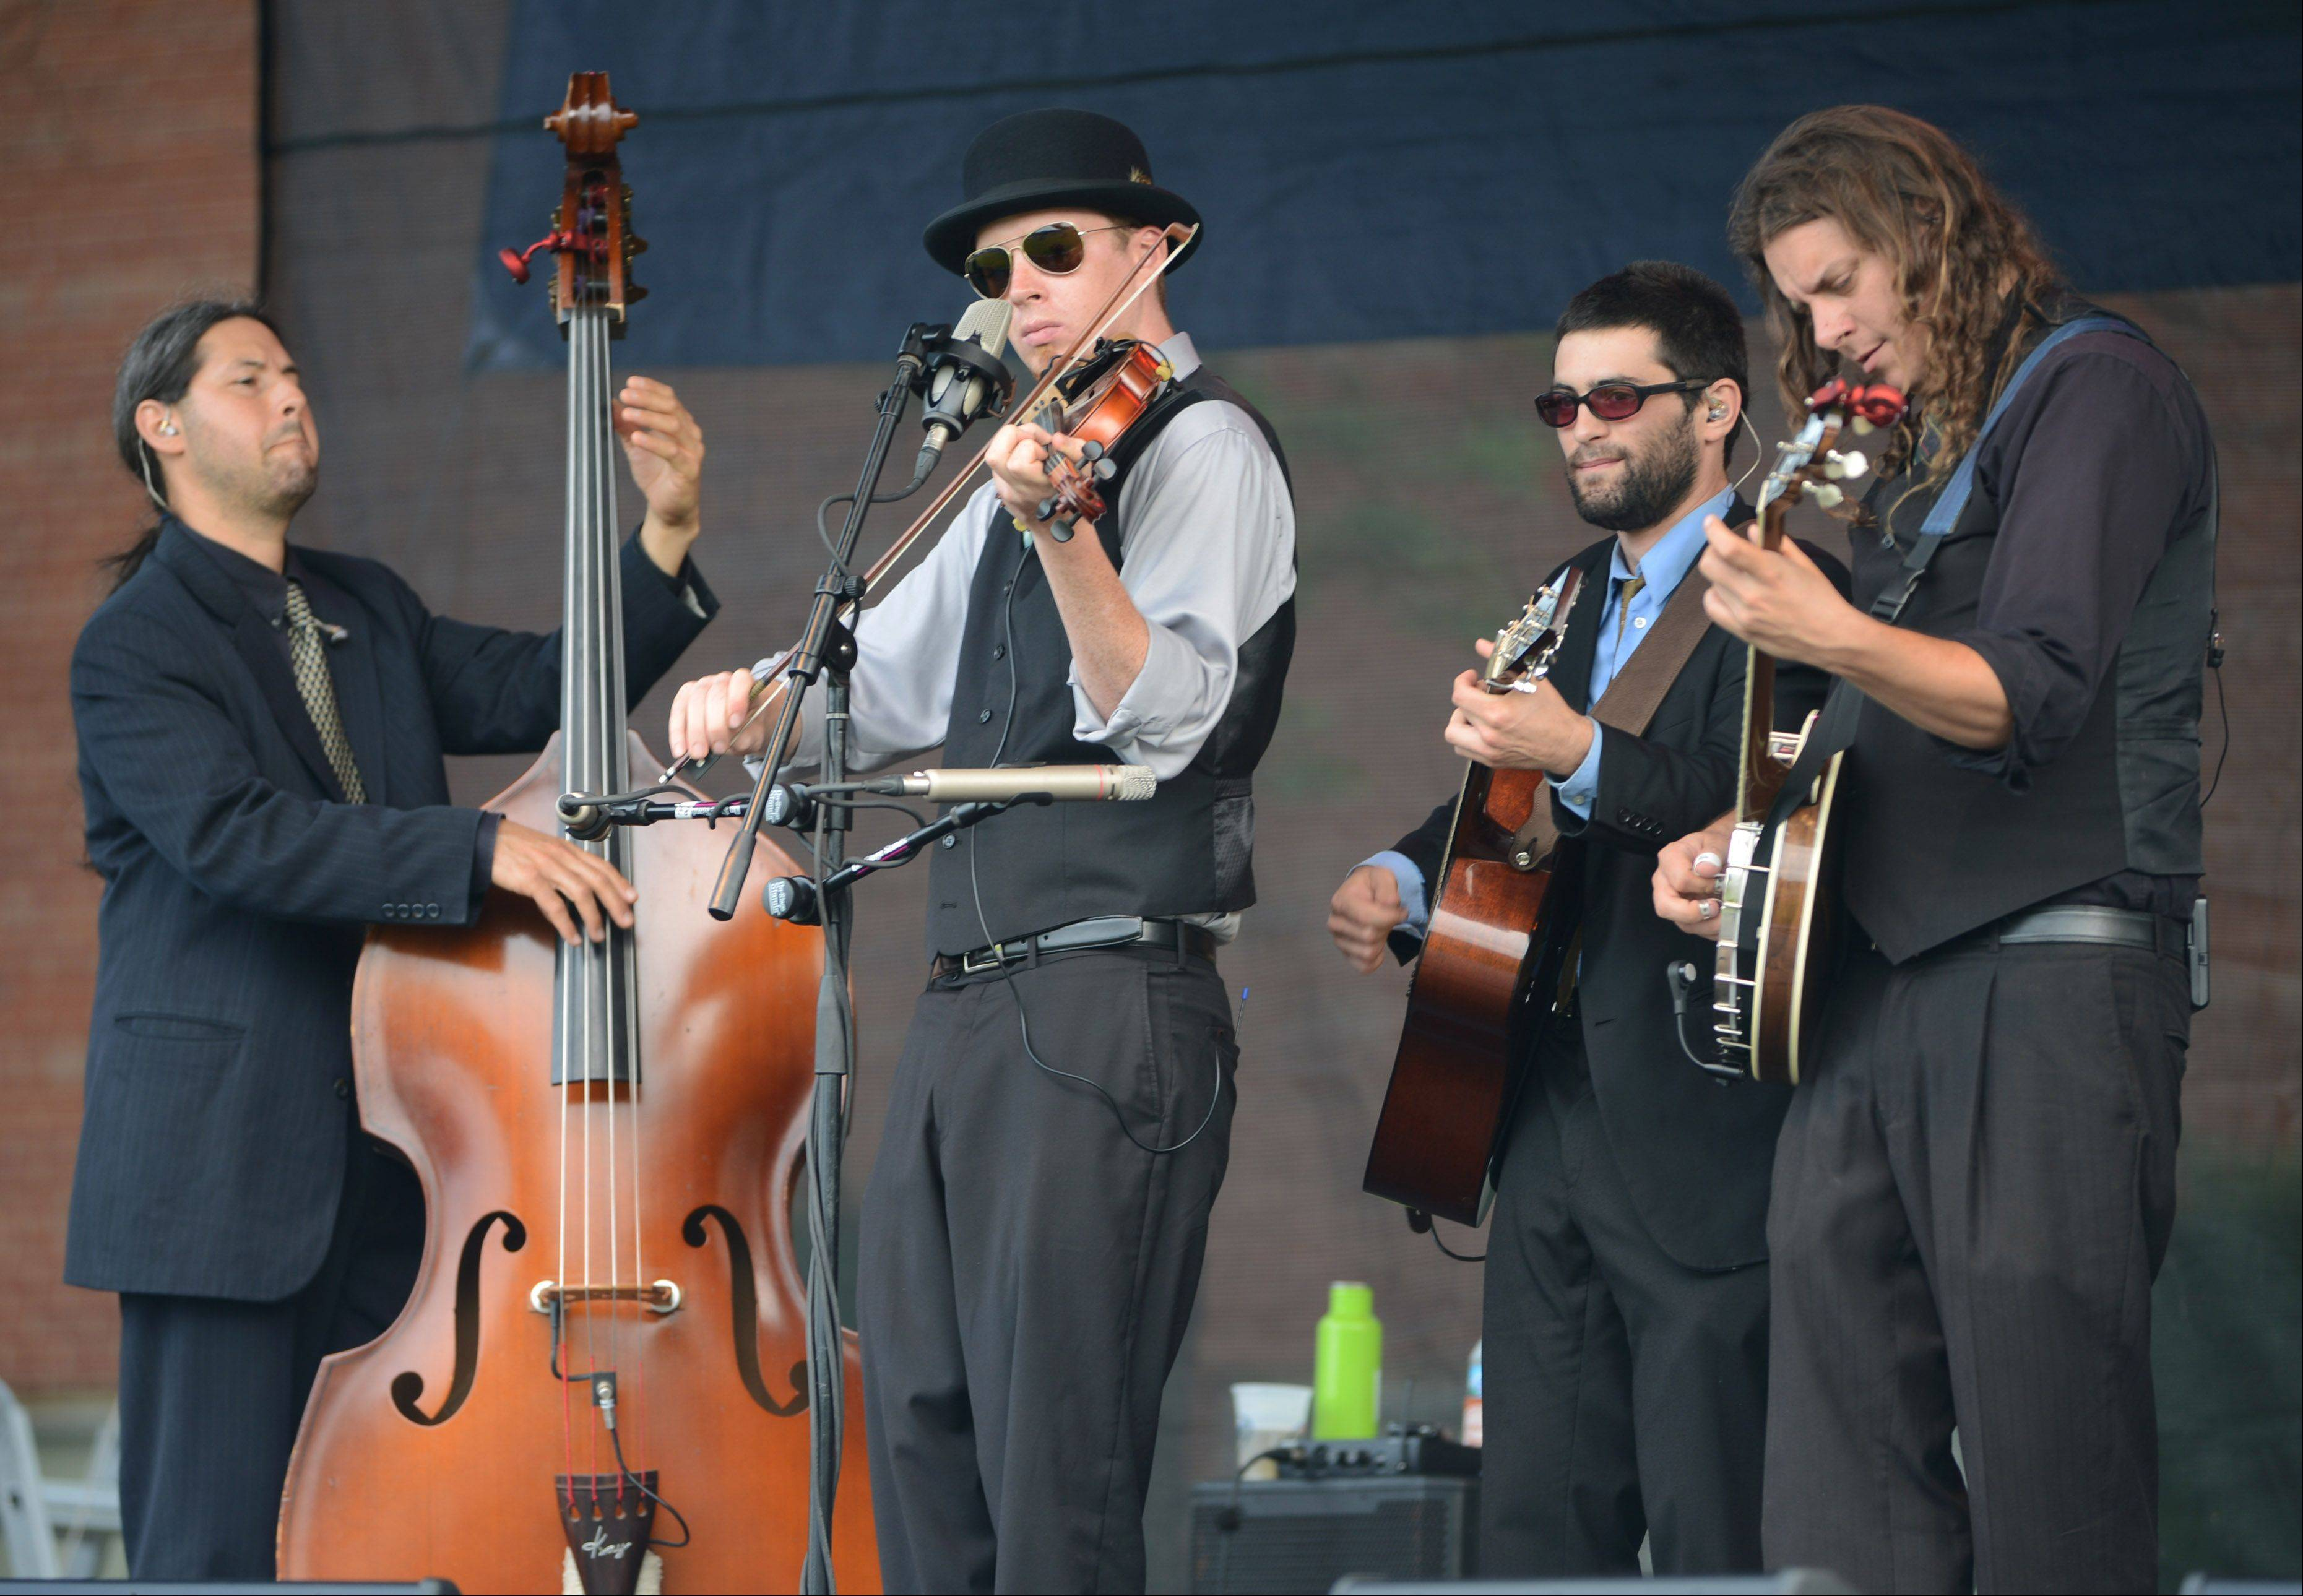 Members of The Henhouse Prowlers of Chicago from left Jon Goldfine, Dan Andree, Star Moss and Ben Wright perform bluegrass music during the Mundelein Community Days Wednesday evening.